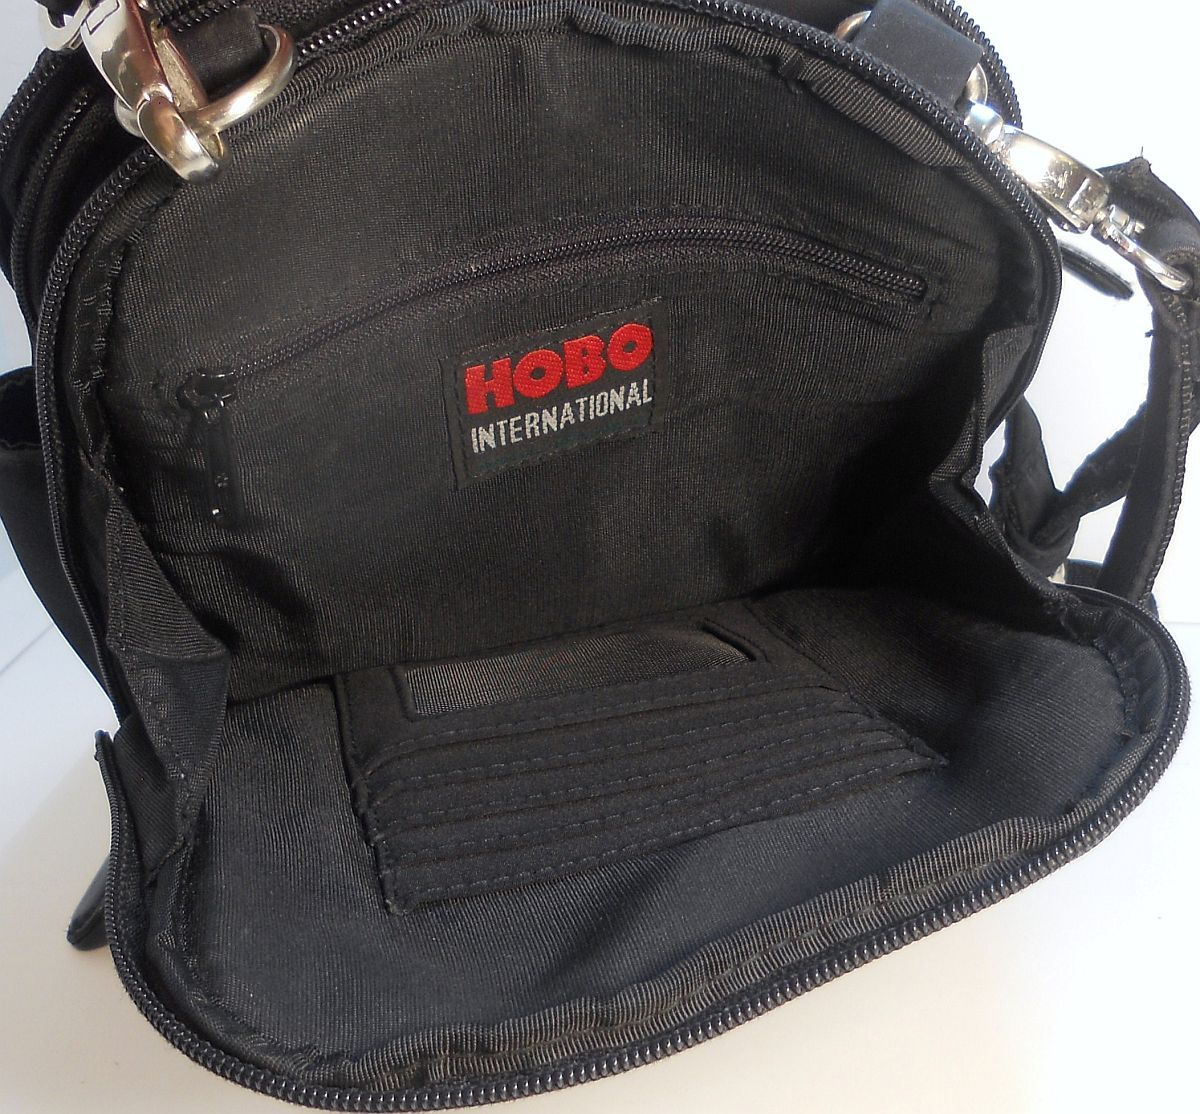 Image 1 of Hobo International Crossbody shoulder organizer travel bag